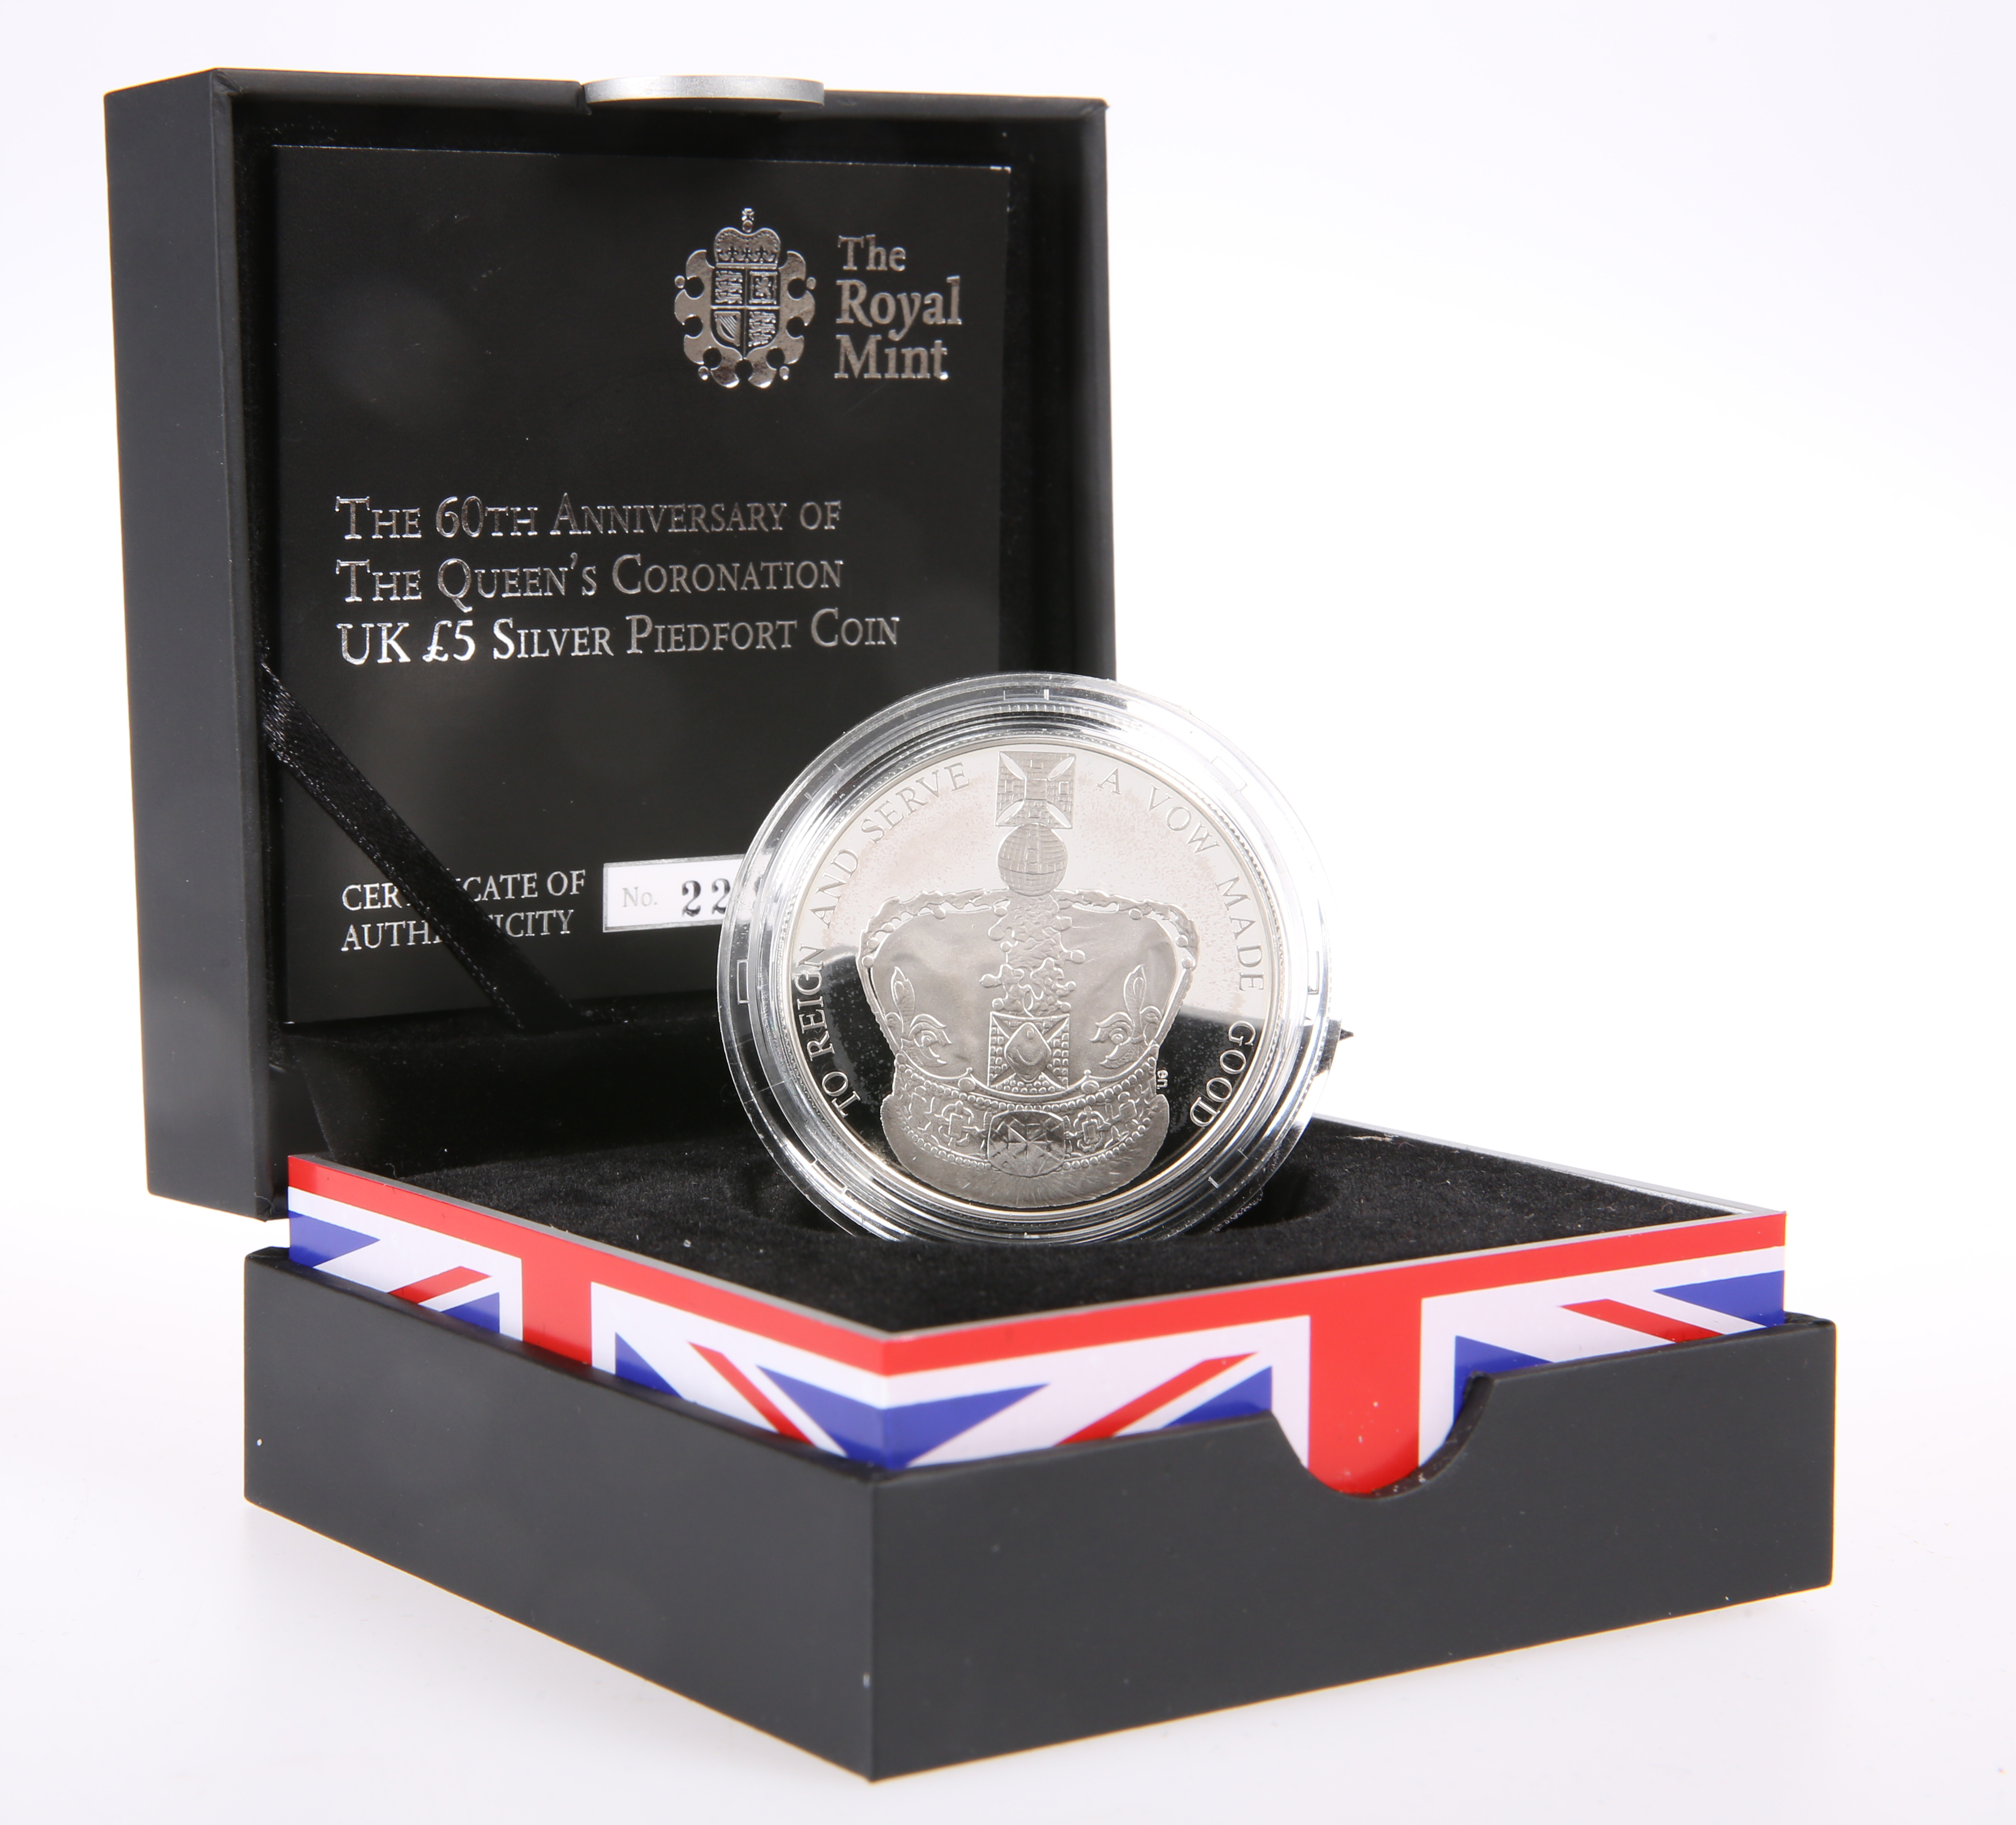 """A ROYAL MINT £5 SILVER PIEDFORT COIN, """"THE 60TH ANNIVERSARY OF THE QUEEN'S CORONATION"""", boxed with"""